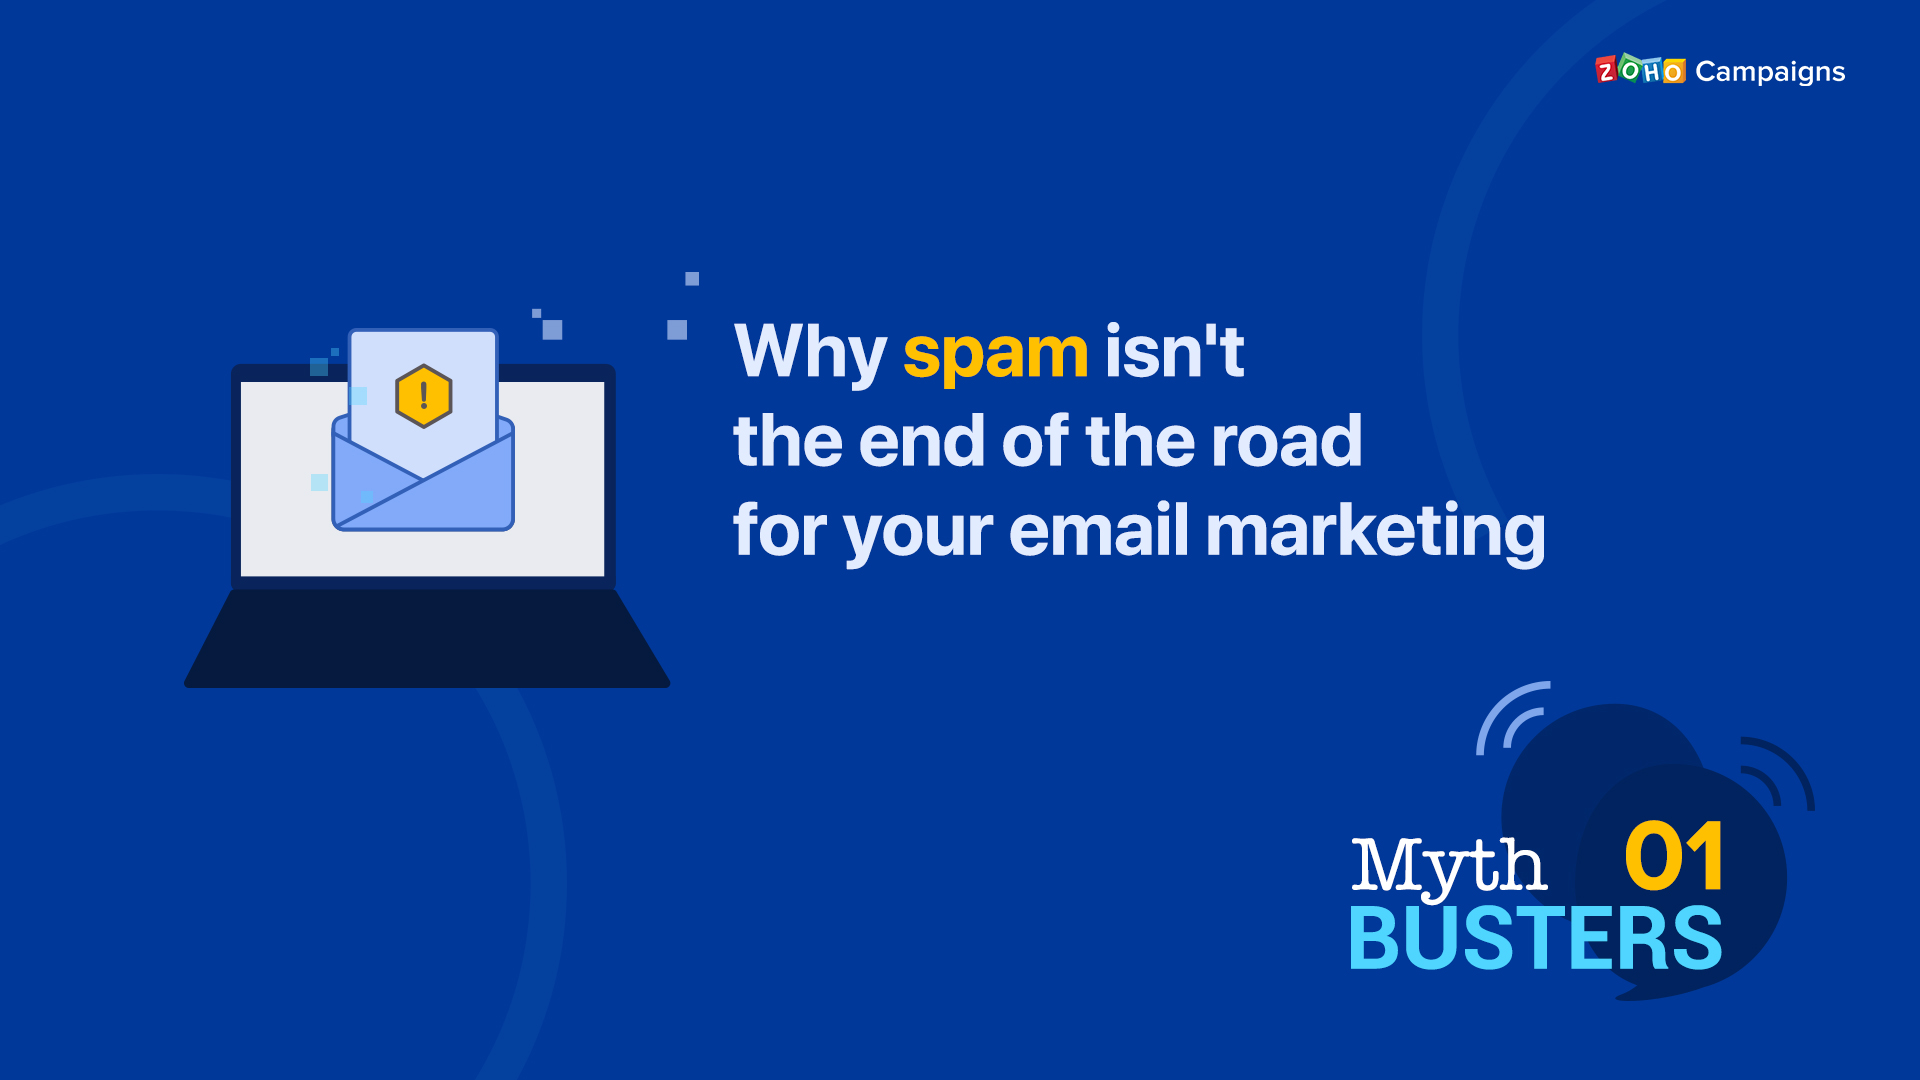 Why spam isn't the end of the road for your email marketing